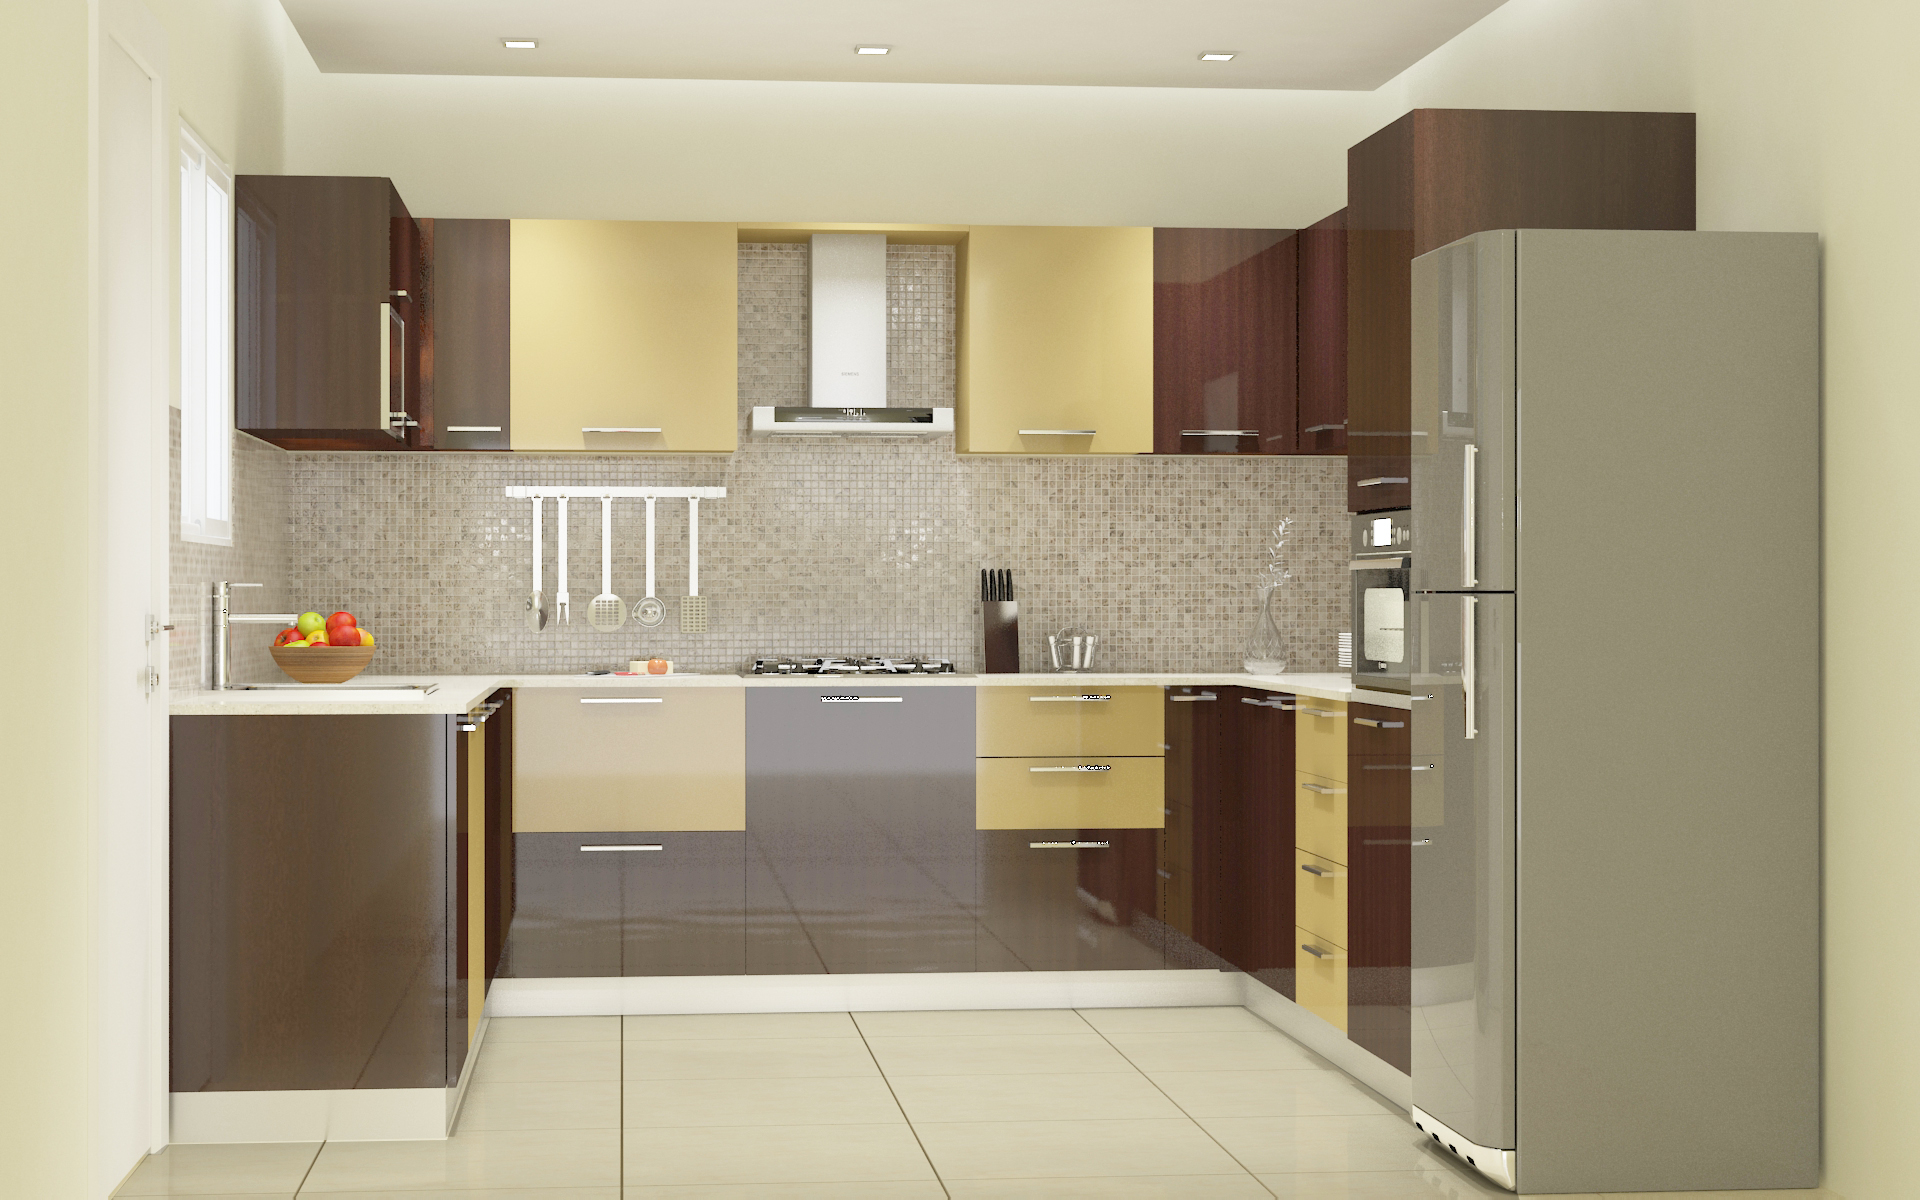 Modular kitchen designs 4 ways to go glossy homelane blog Modular kitchen design colors